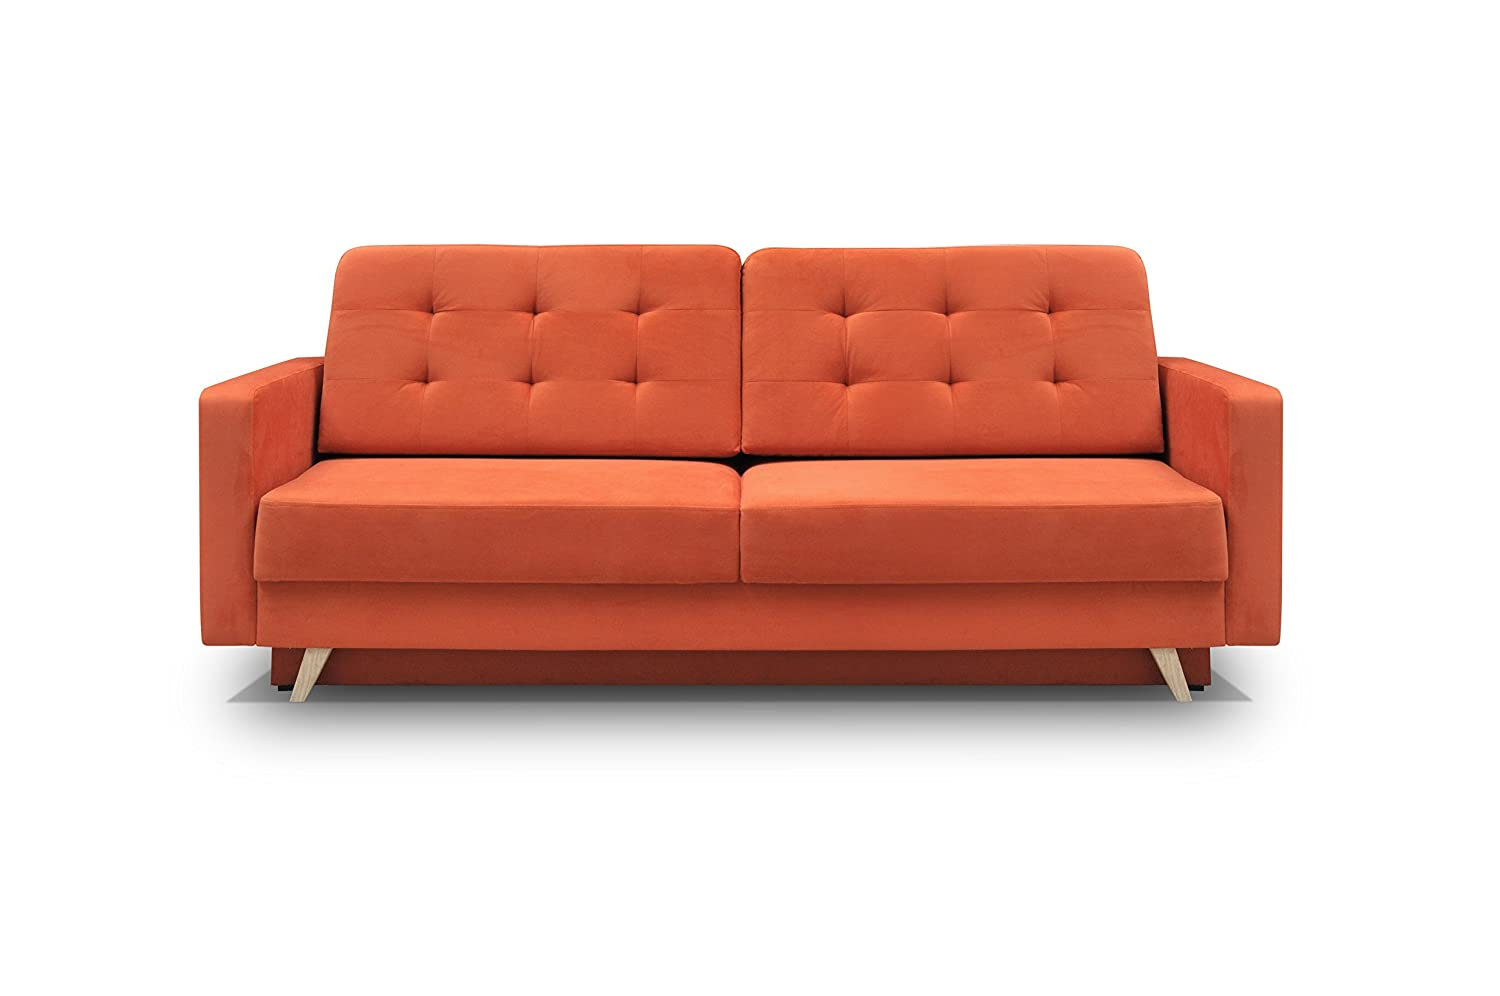 Superb Meble Furniture Rugs Vegas Futon Sofa Bed Queen Sleeper With Storage Orange Gmtry Best Dining Table And Chair Ideas Images Gmtryco